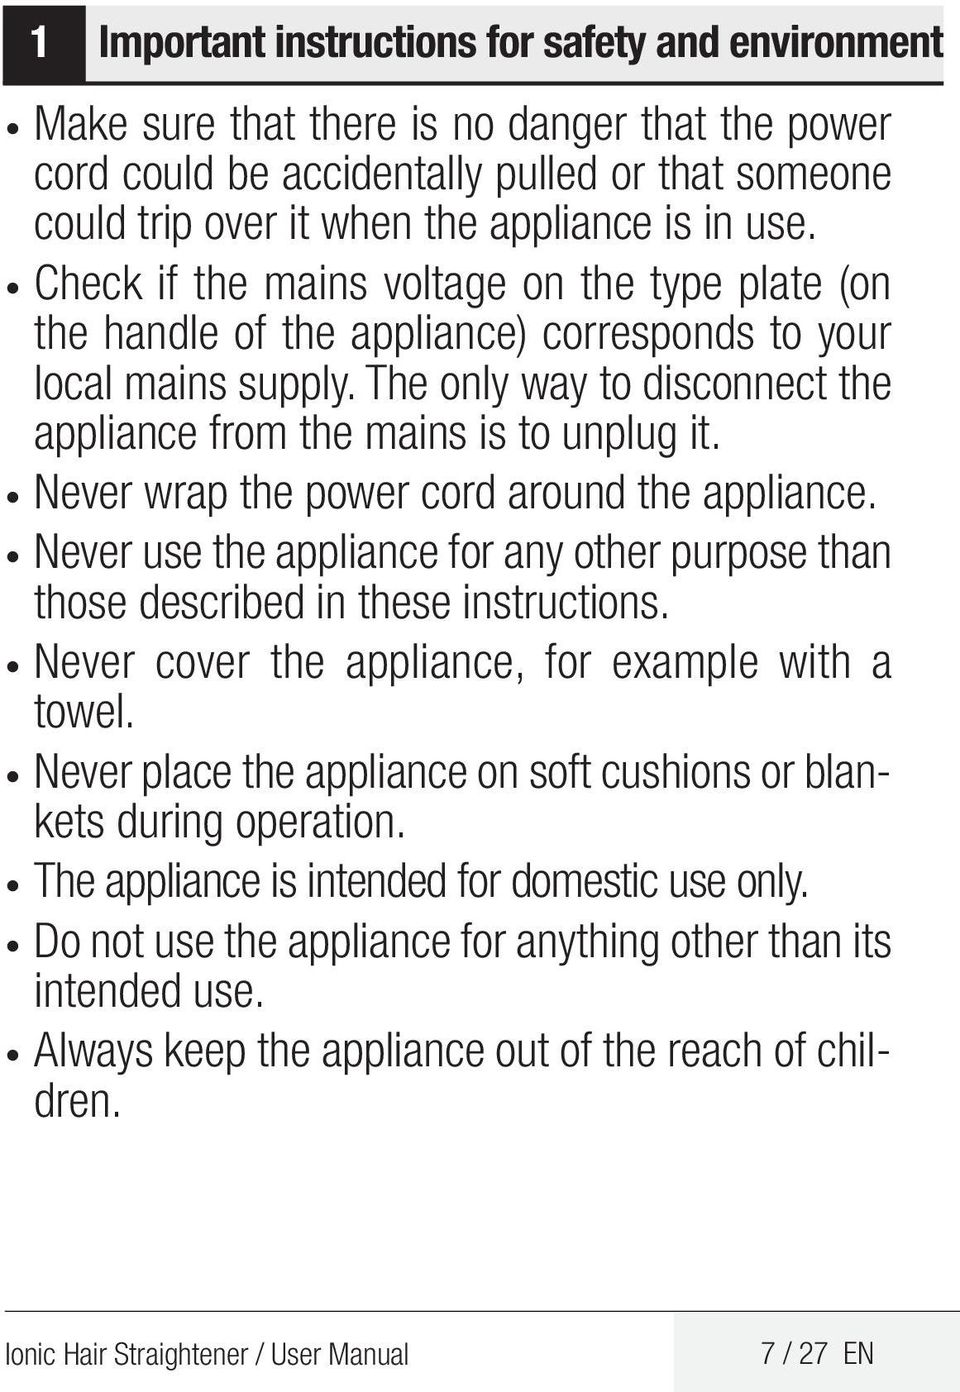 Never wrap the power cord around the appliance. Never use the appliance for any other purpose than those described in these instructions. Never cover the appliance, for example with a towel.